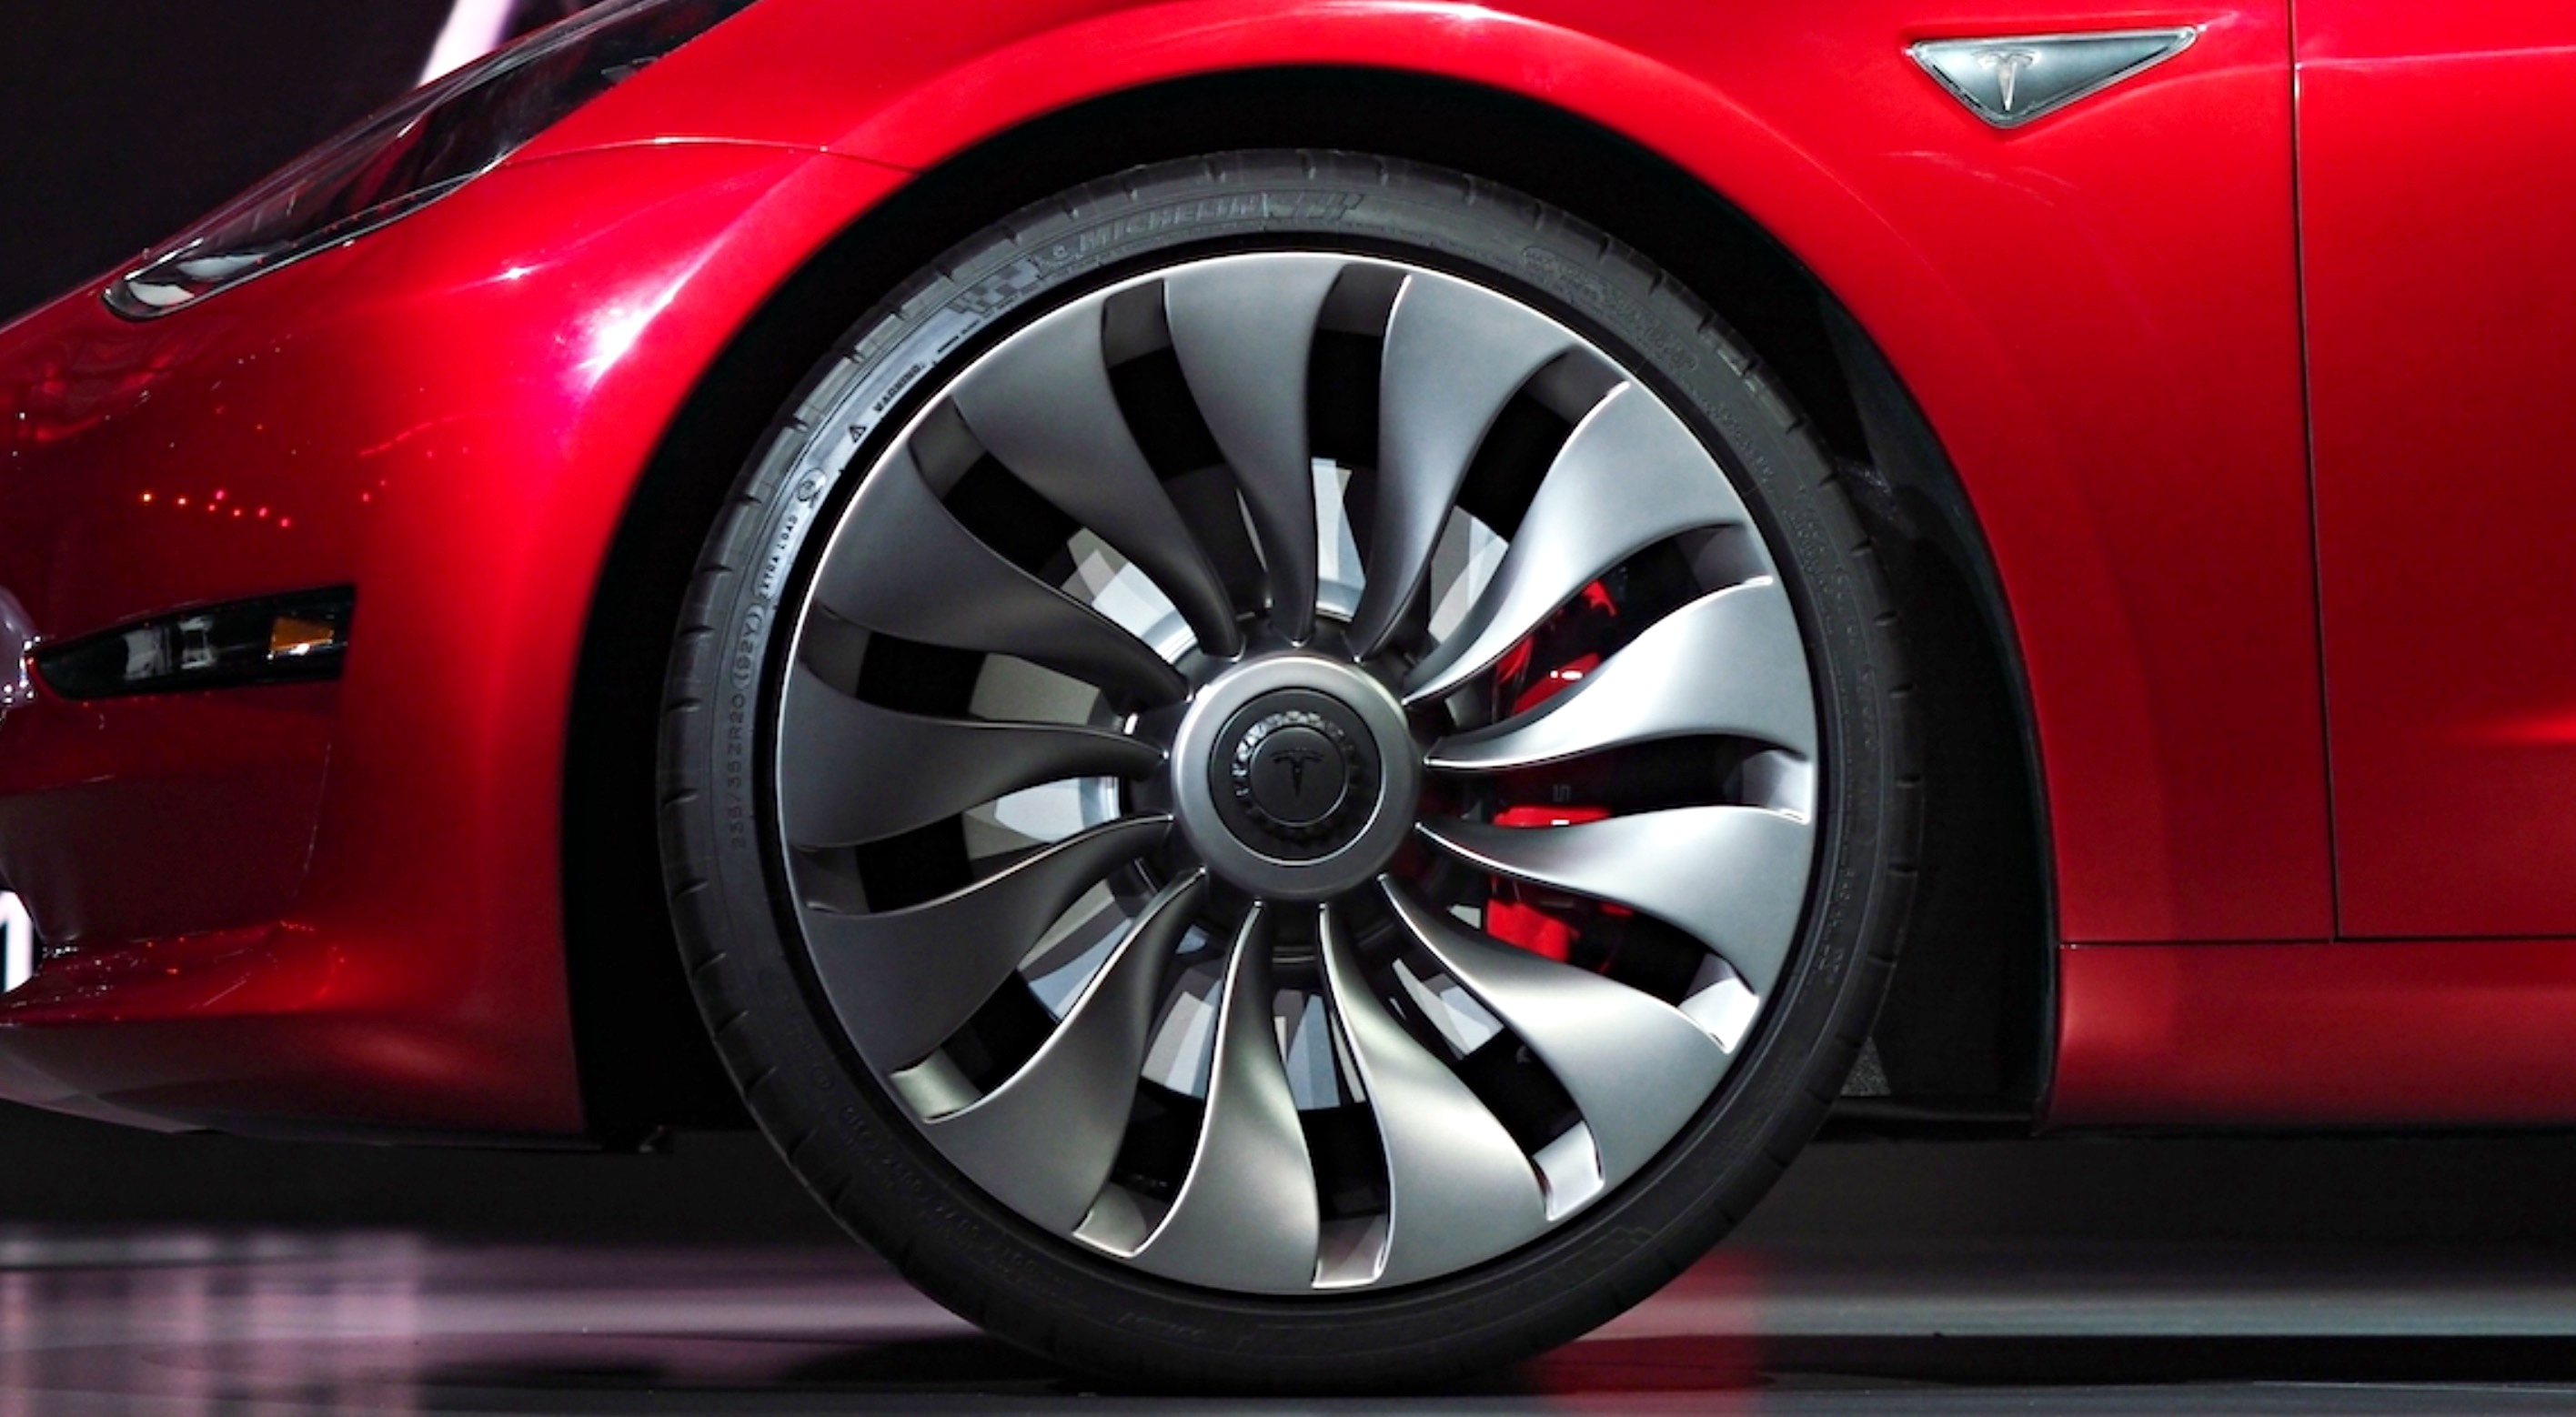 tesla-model-3-wheels-20-inch-michelin-tires